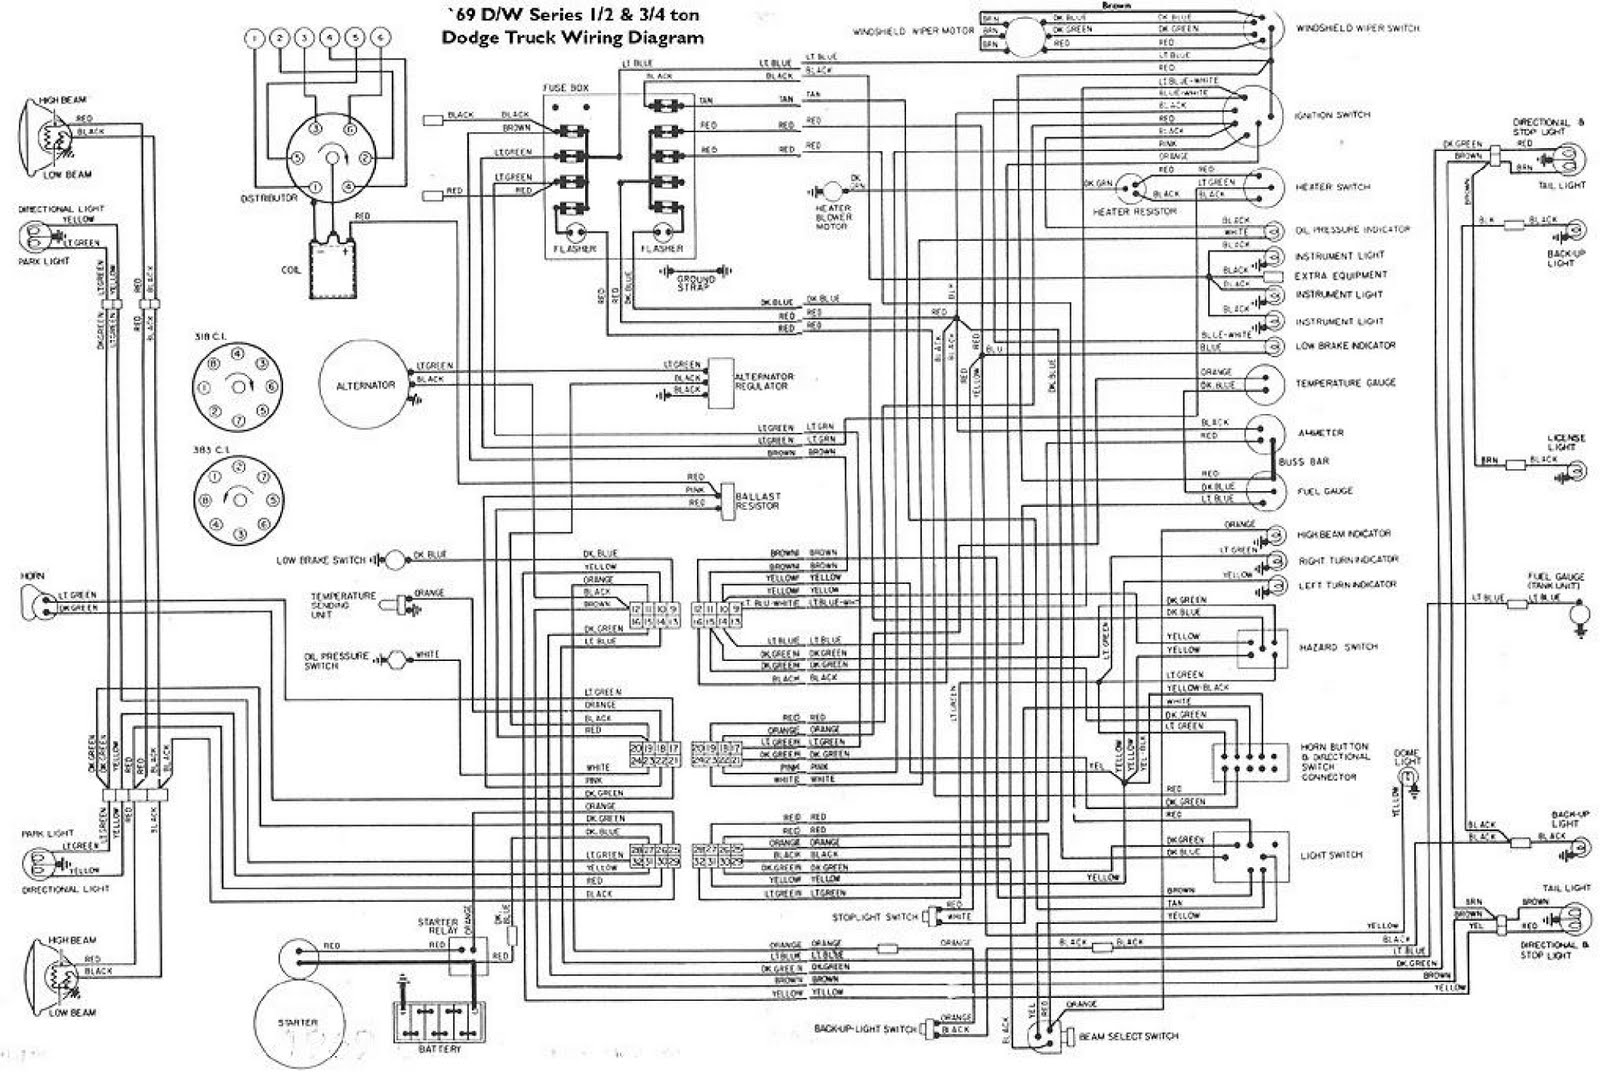 1978 dodge truck ignition wiring diagram 4pin t verbinder 1969 39s d w series schematic